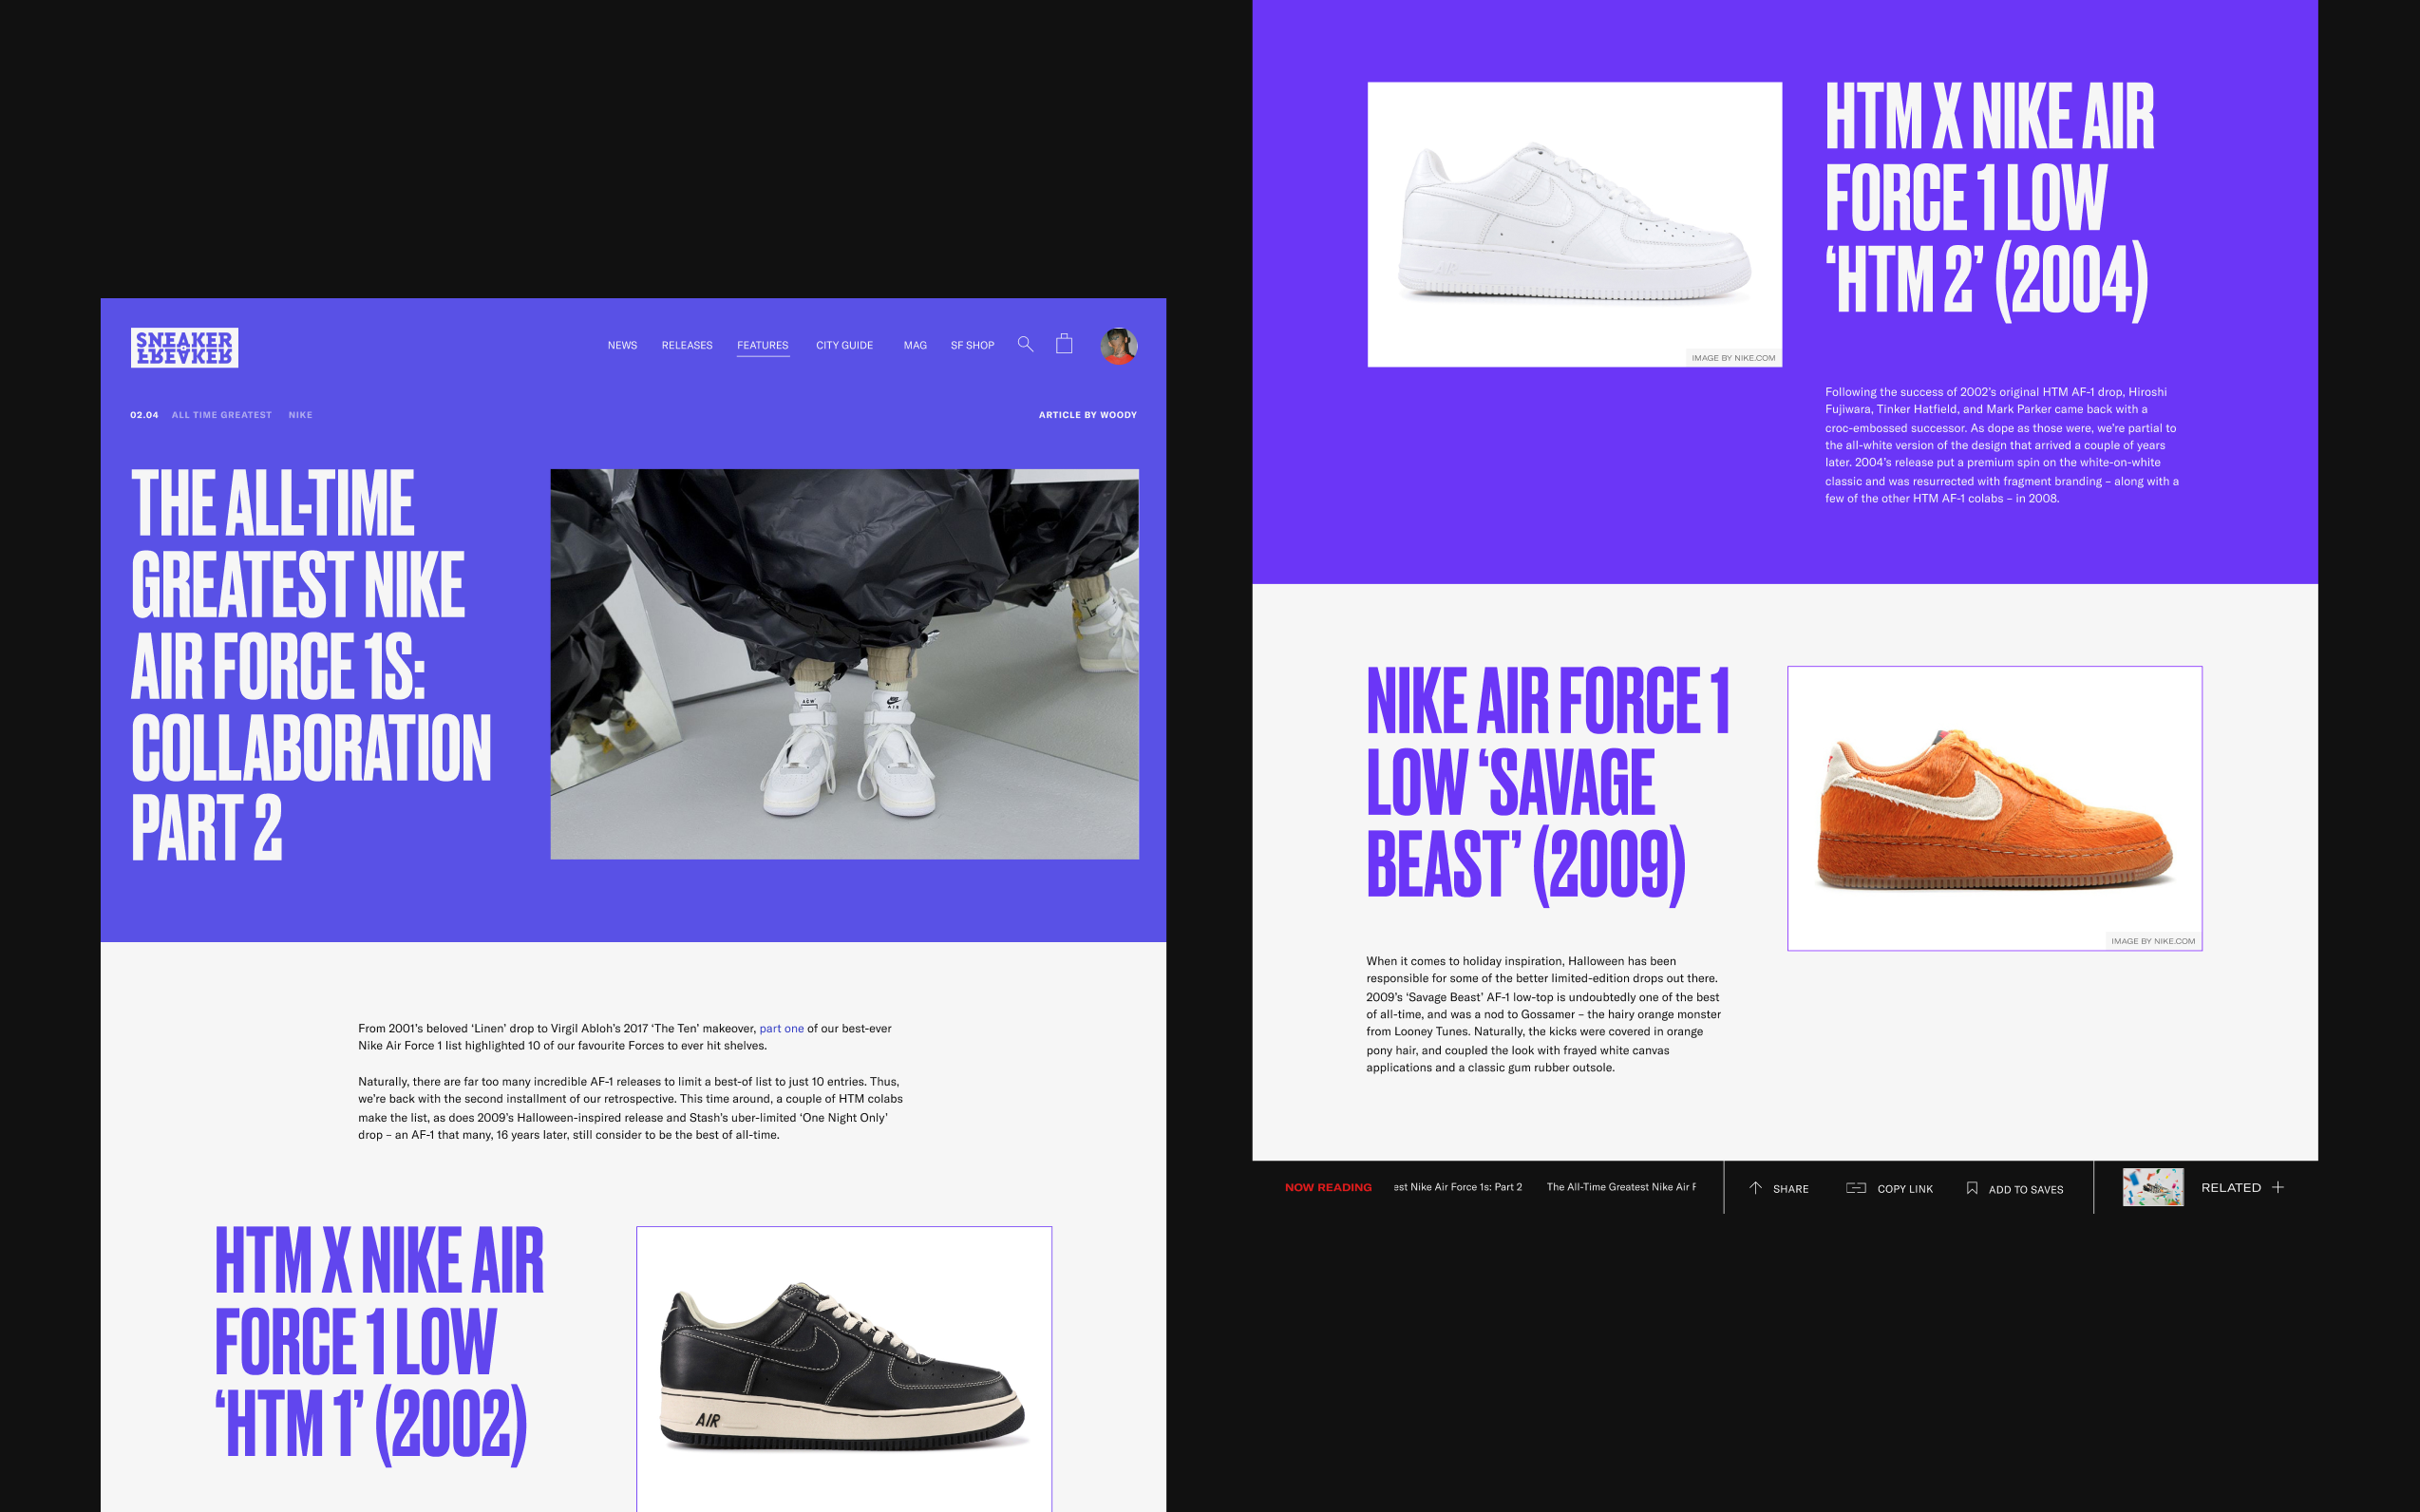 Two desktop screens showing large purple and white article images from sneakerfreaker.com